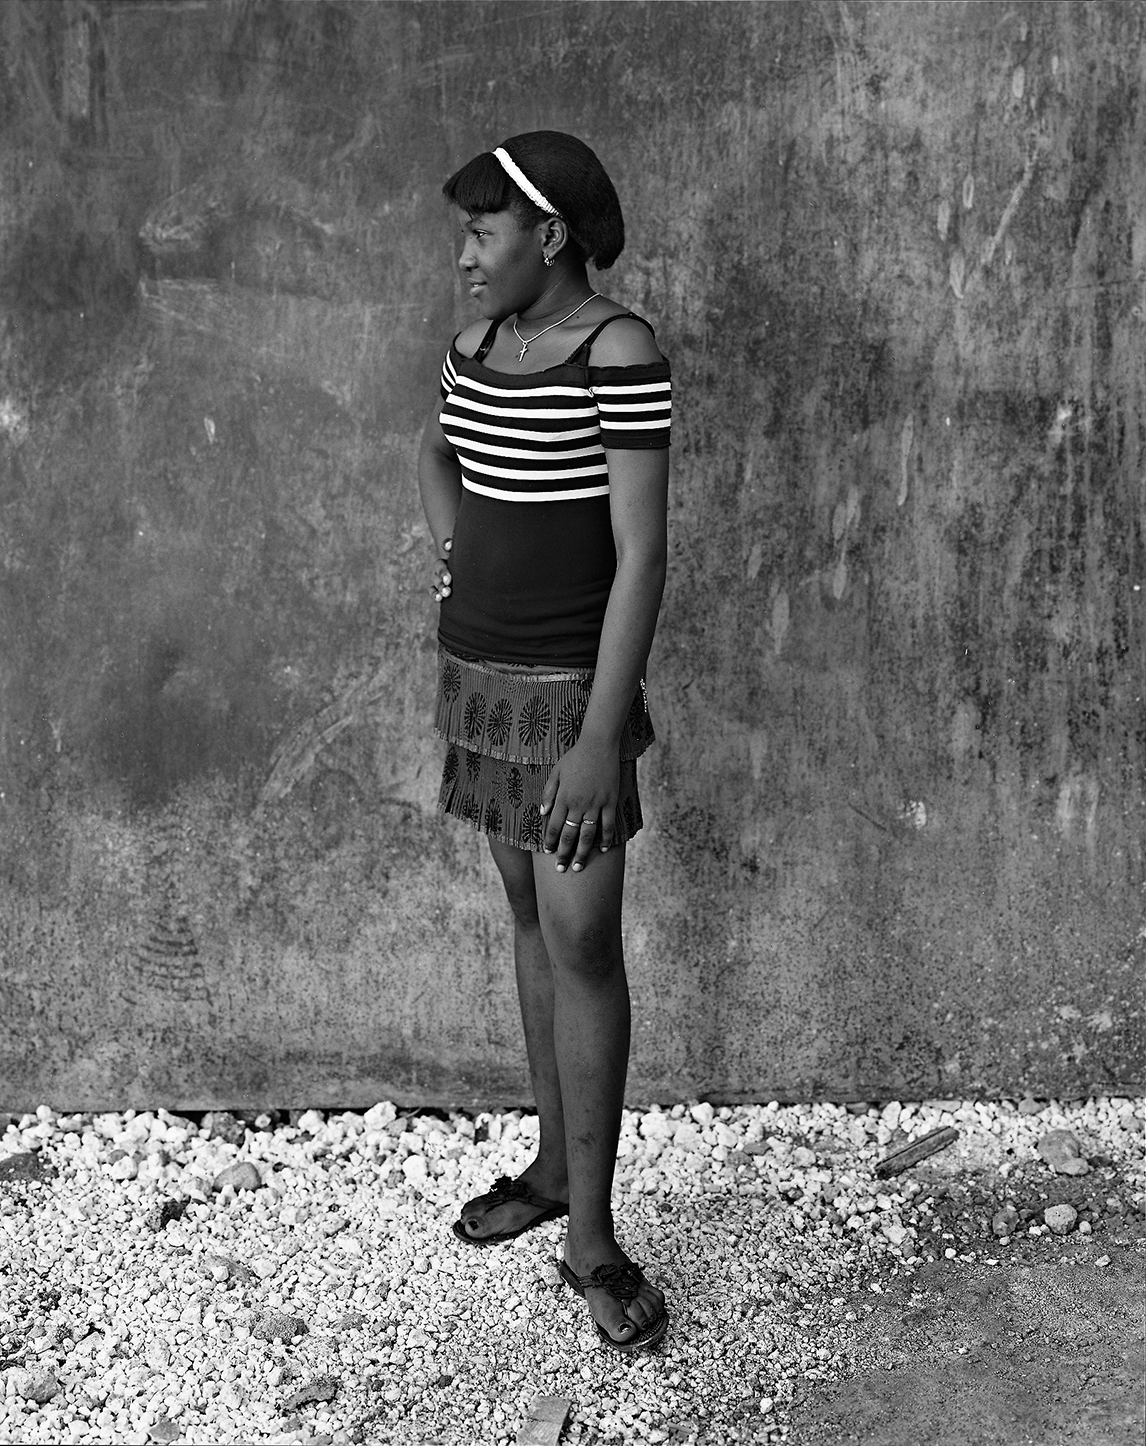 Camesuze Mondesir (My Pose), Grand Rue, November 2011